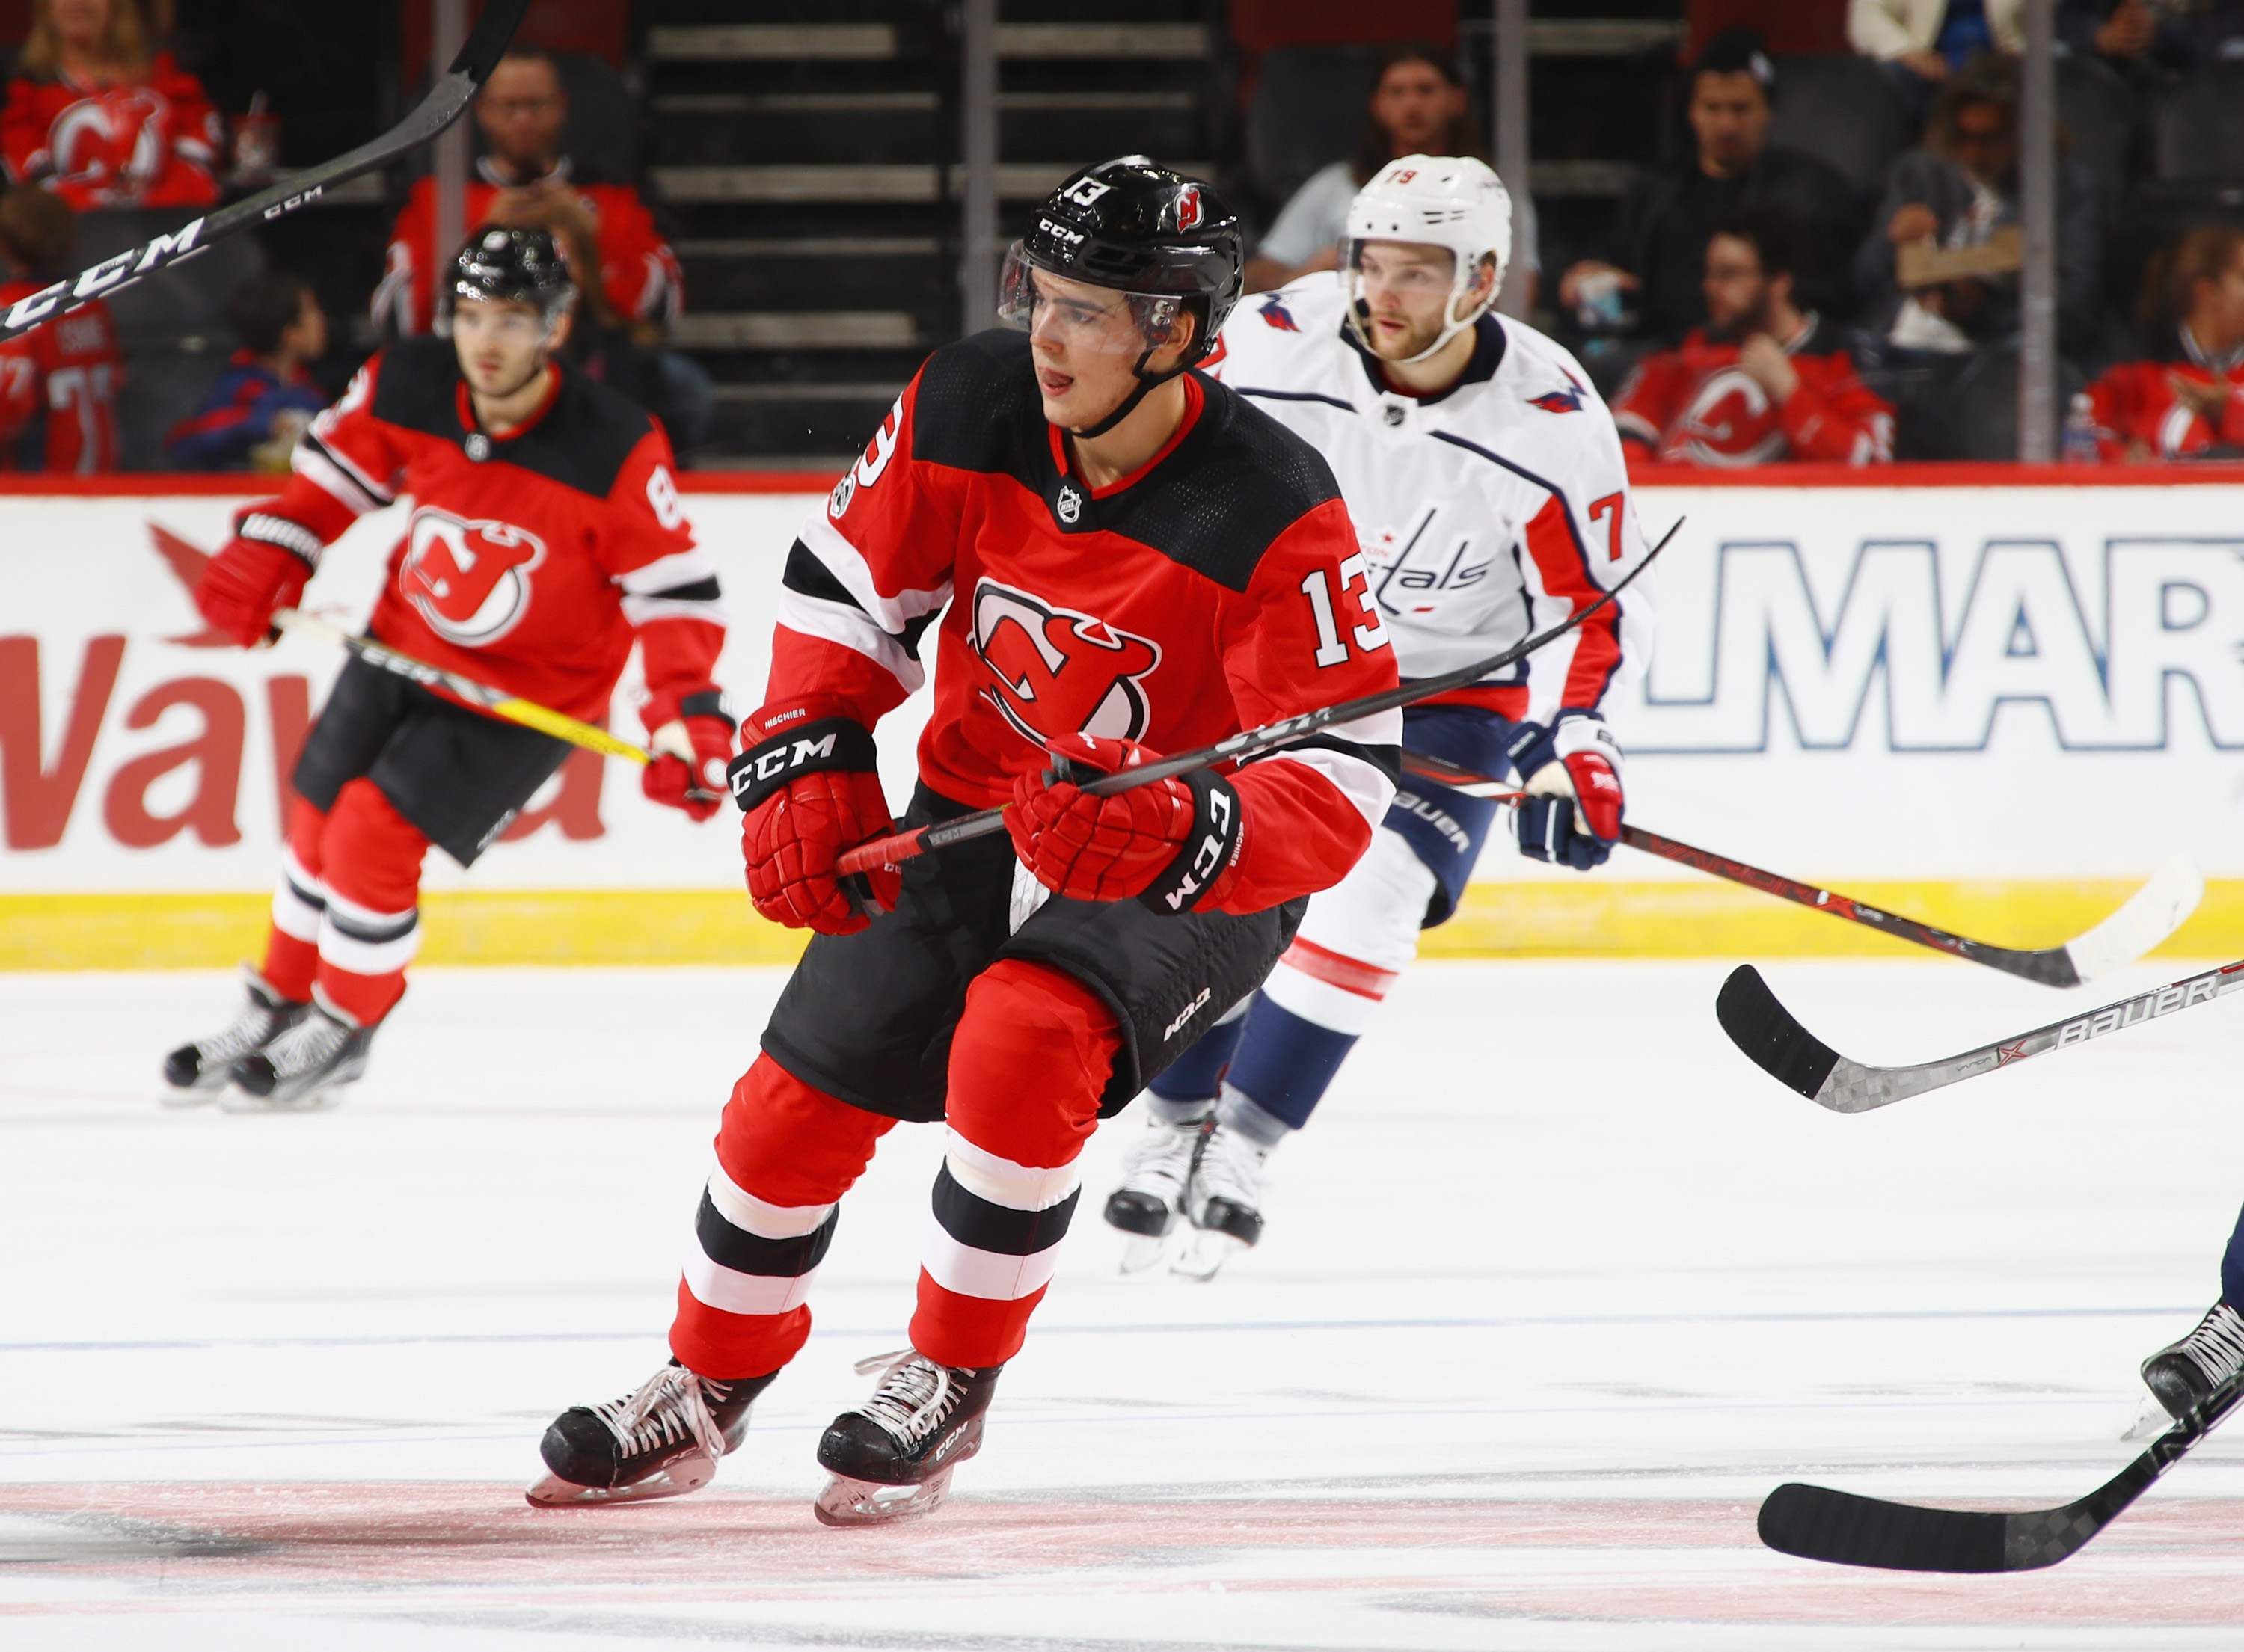 ce9cdbb66 Can Hischier Land Among the Top Seasons by a Devils Rookie?